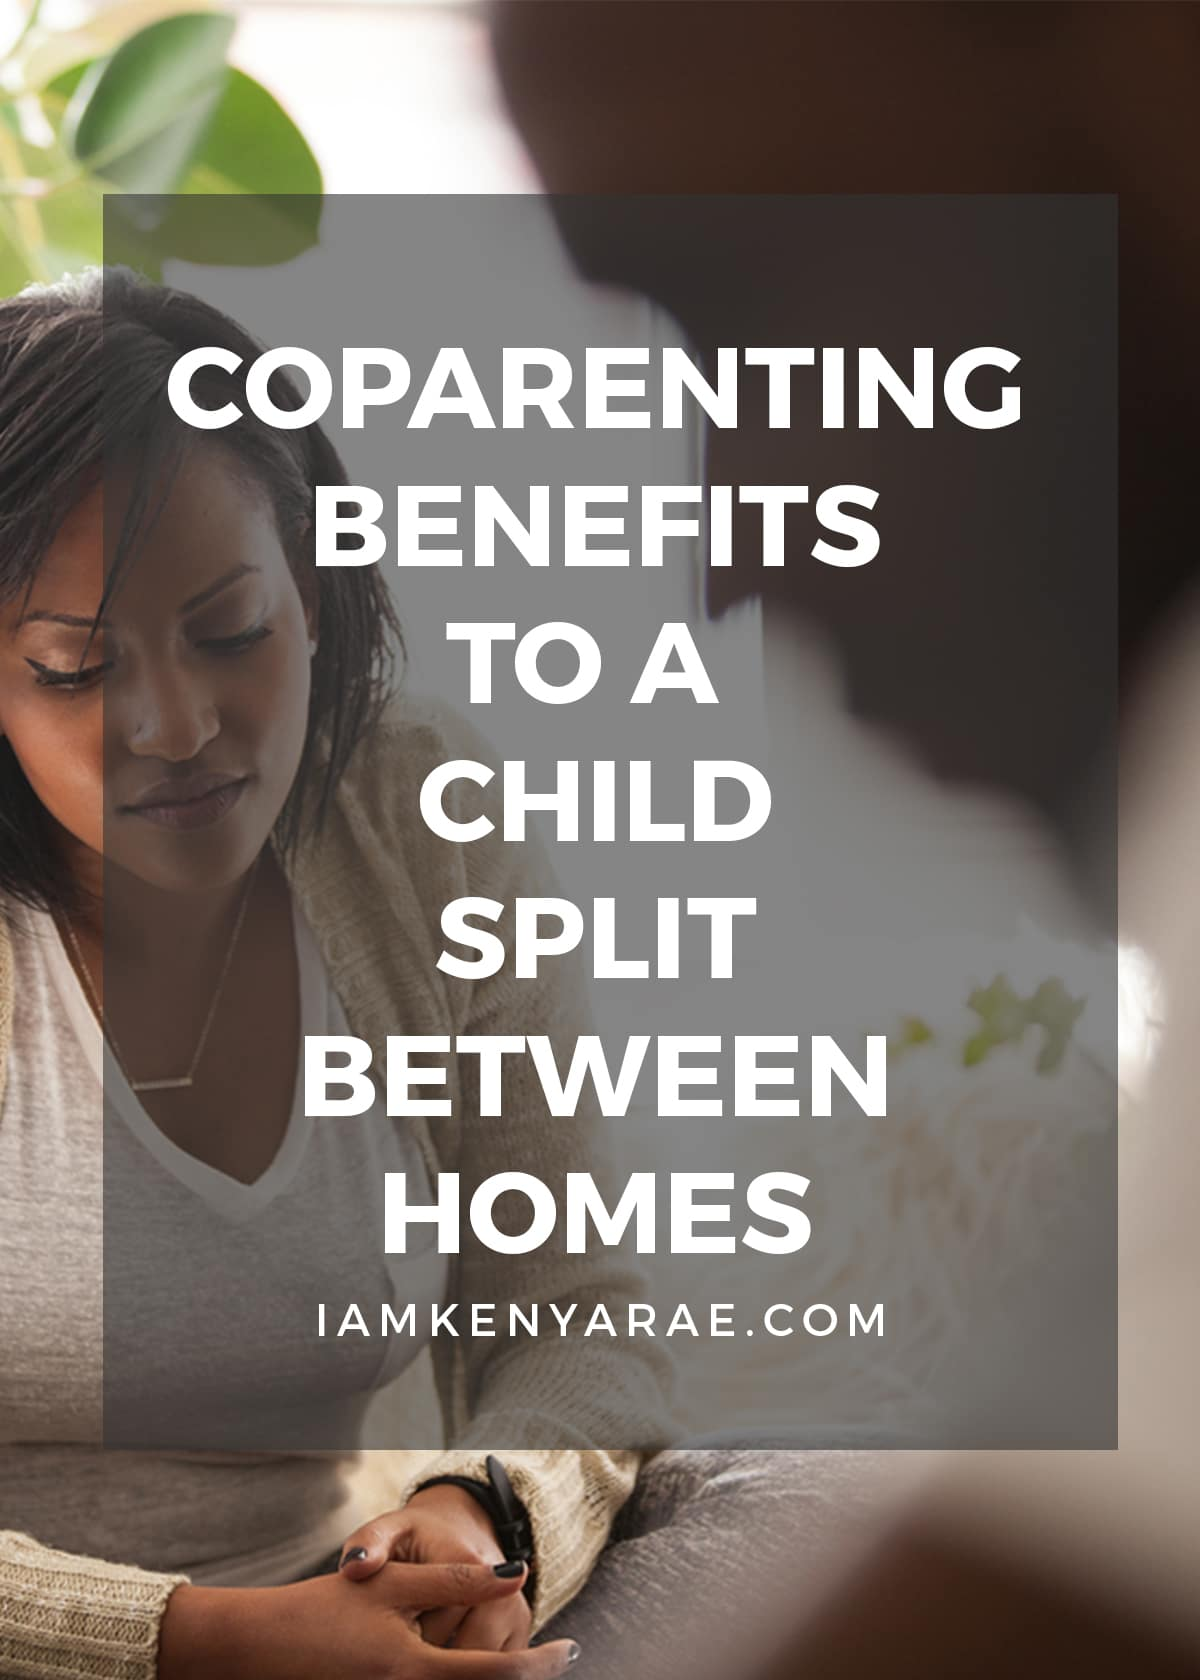 coparenting benefits to a child split between homes